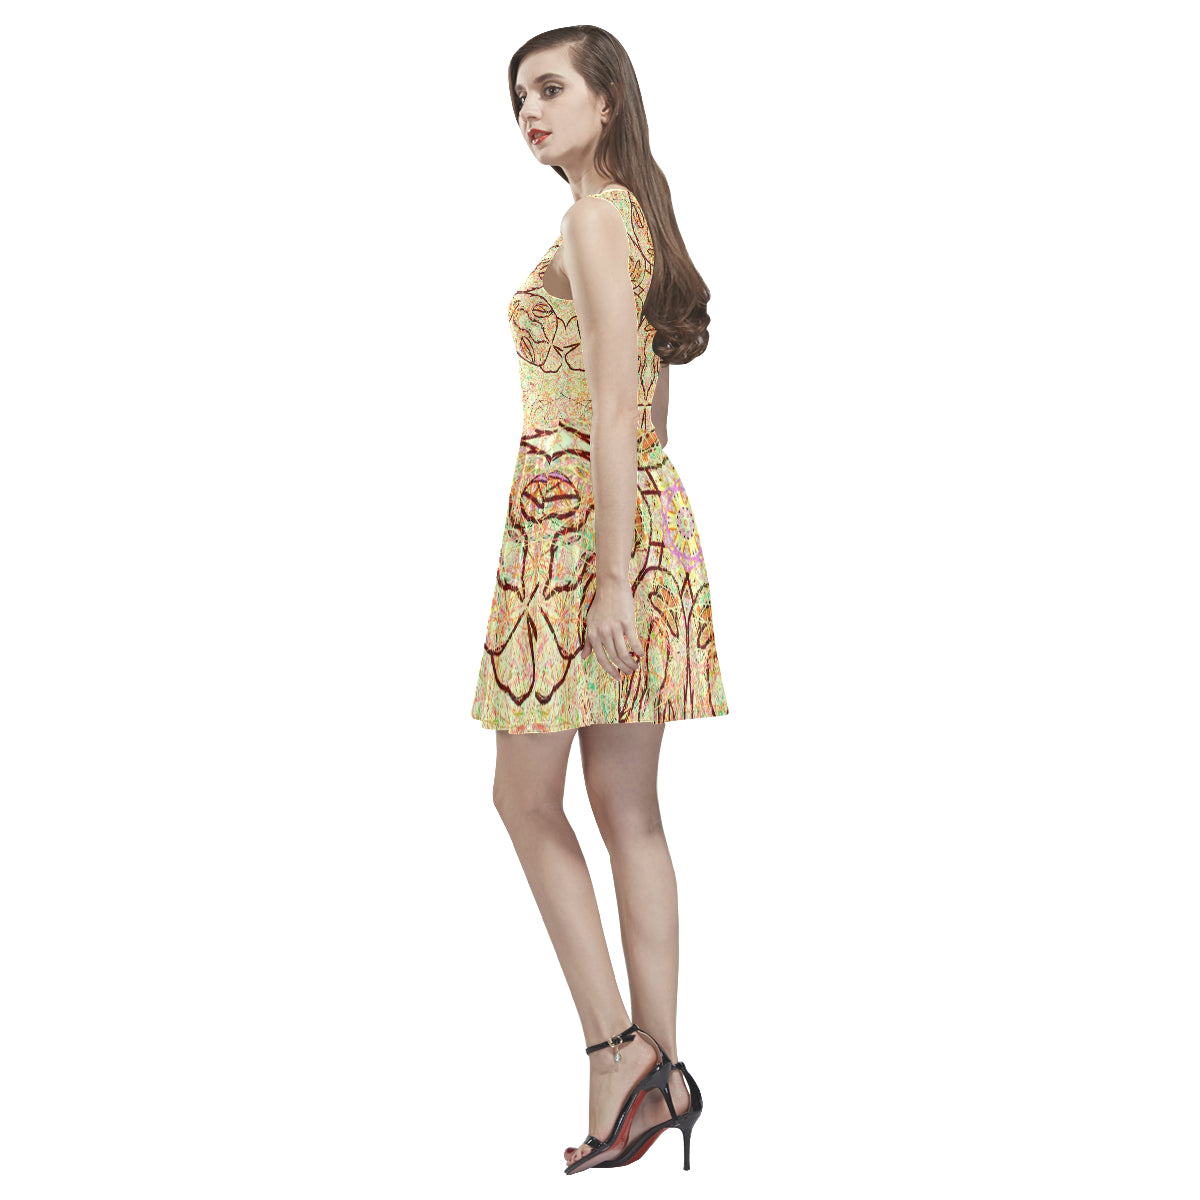 Thleudron  Persephone Thea Sleeveless Skater Dress(Model D19) - Thleudron